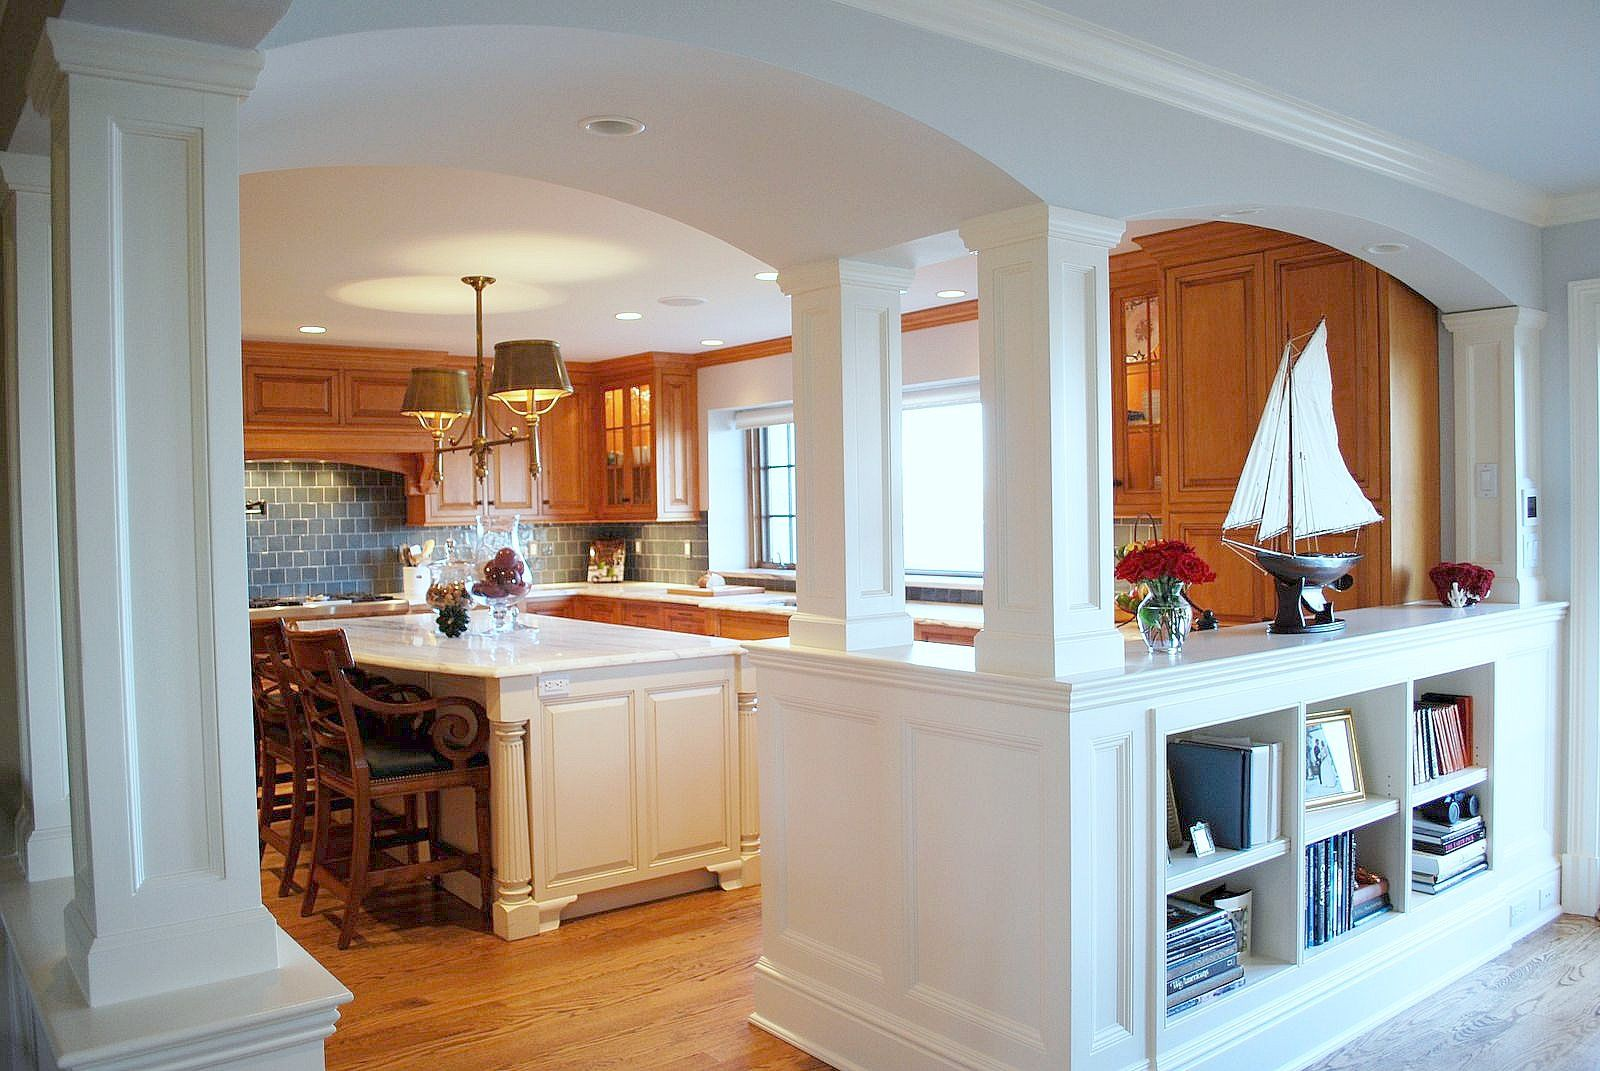 Awesome Ocean Front Kitchen   Entry To Living Room. Benjamin Moore Linen White Trim  Paint.